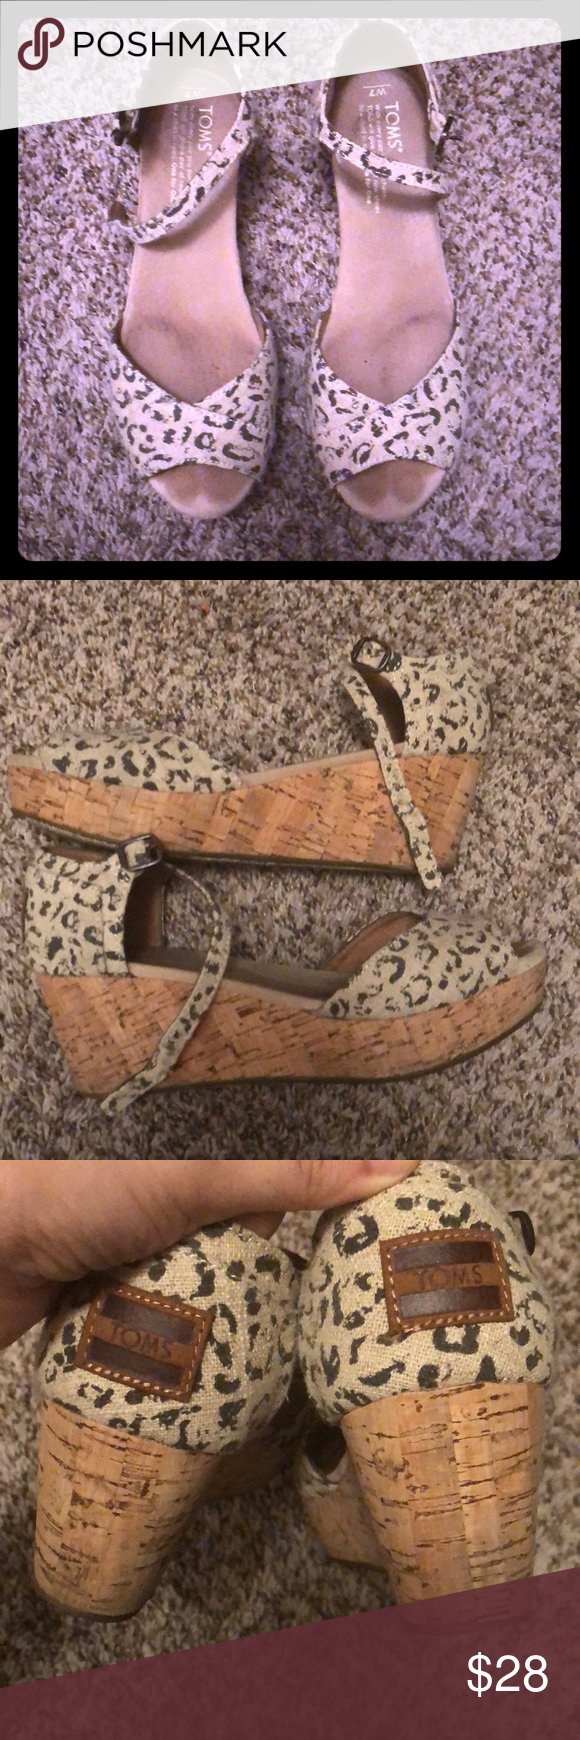 Leopard print Toms wedges Very cute and comfortable Toms wedges. Gray condition. Heel is about 2 1/2 inches with 1 in platform Toms Shoes Wedges #tomwedges Leopard print Toms wedges Very cute and comfortable Toms wedges. Gray condition. Heel is about 2 1/2 inches with 1 in platform Toms Shoes Wedges #tomwedges